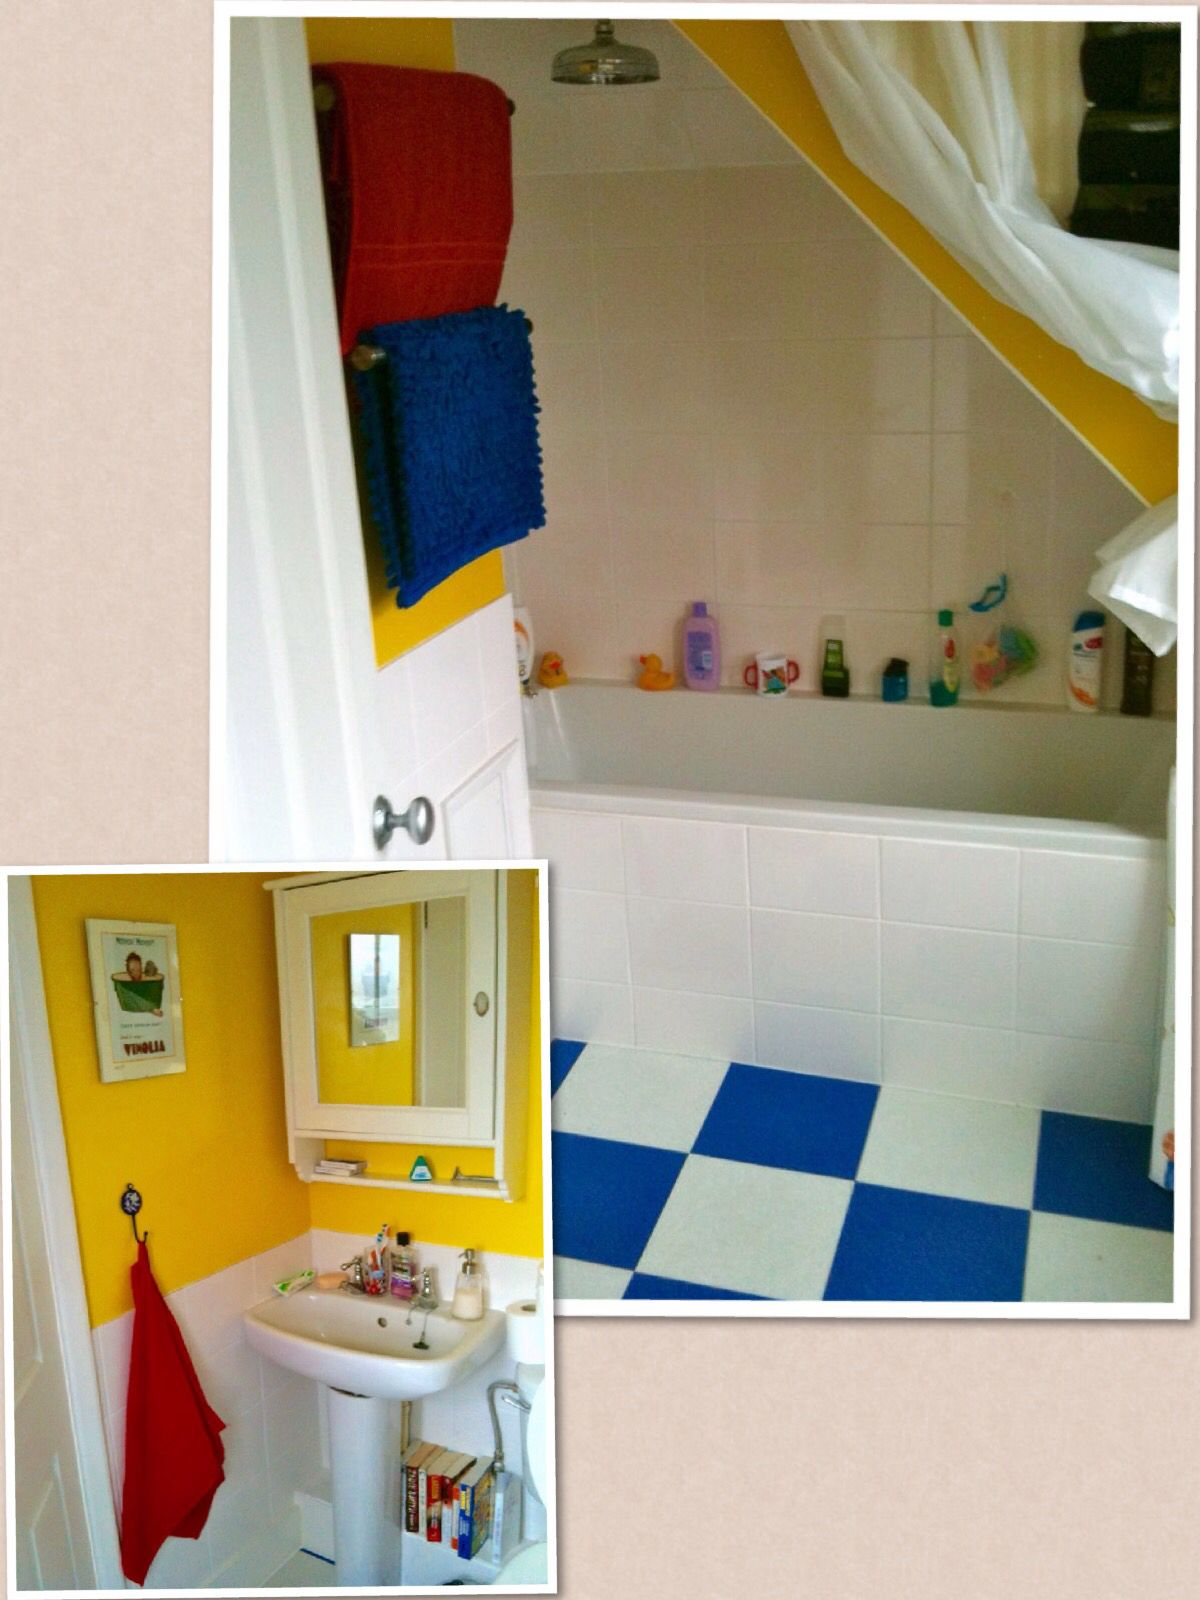 Primary Colours Red Blue Yellow Bathroom Yellow Bathroom Decor Yellow Bathroom Walls Yellow Bathroom Tiles